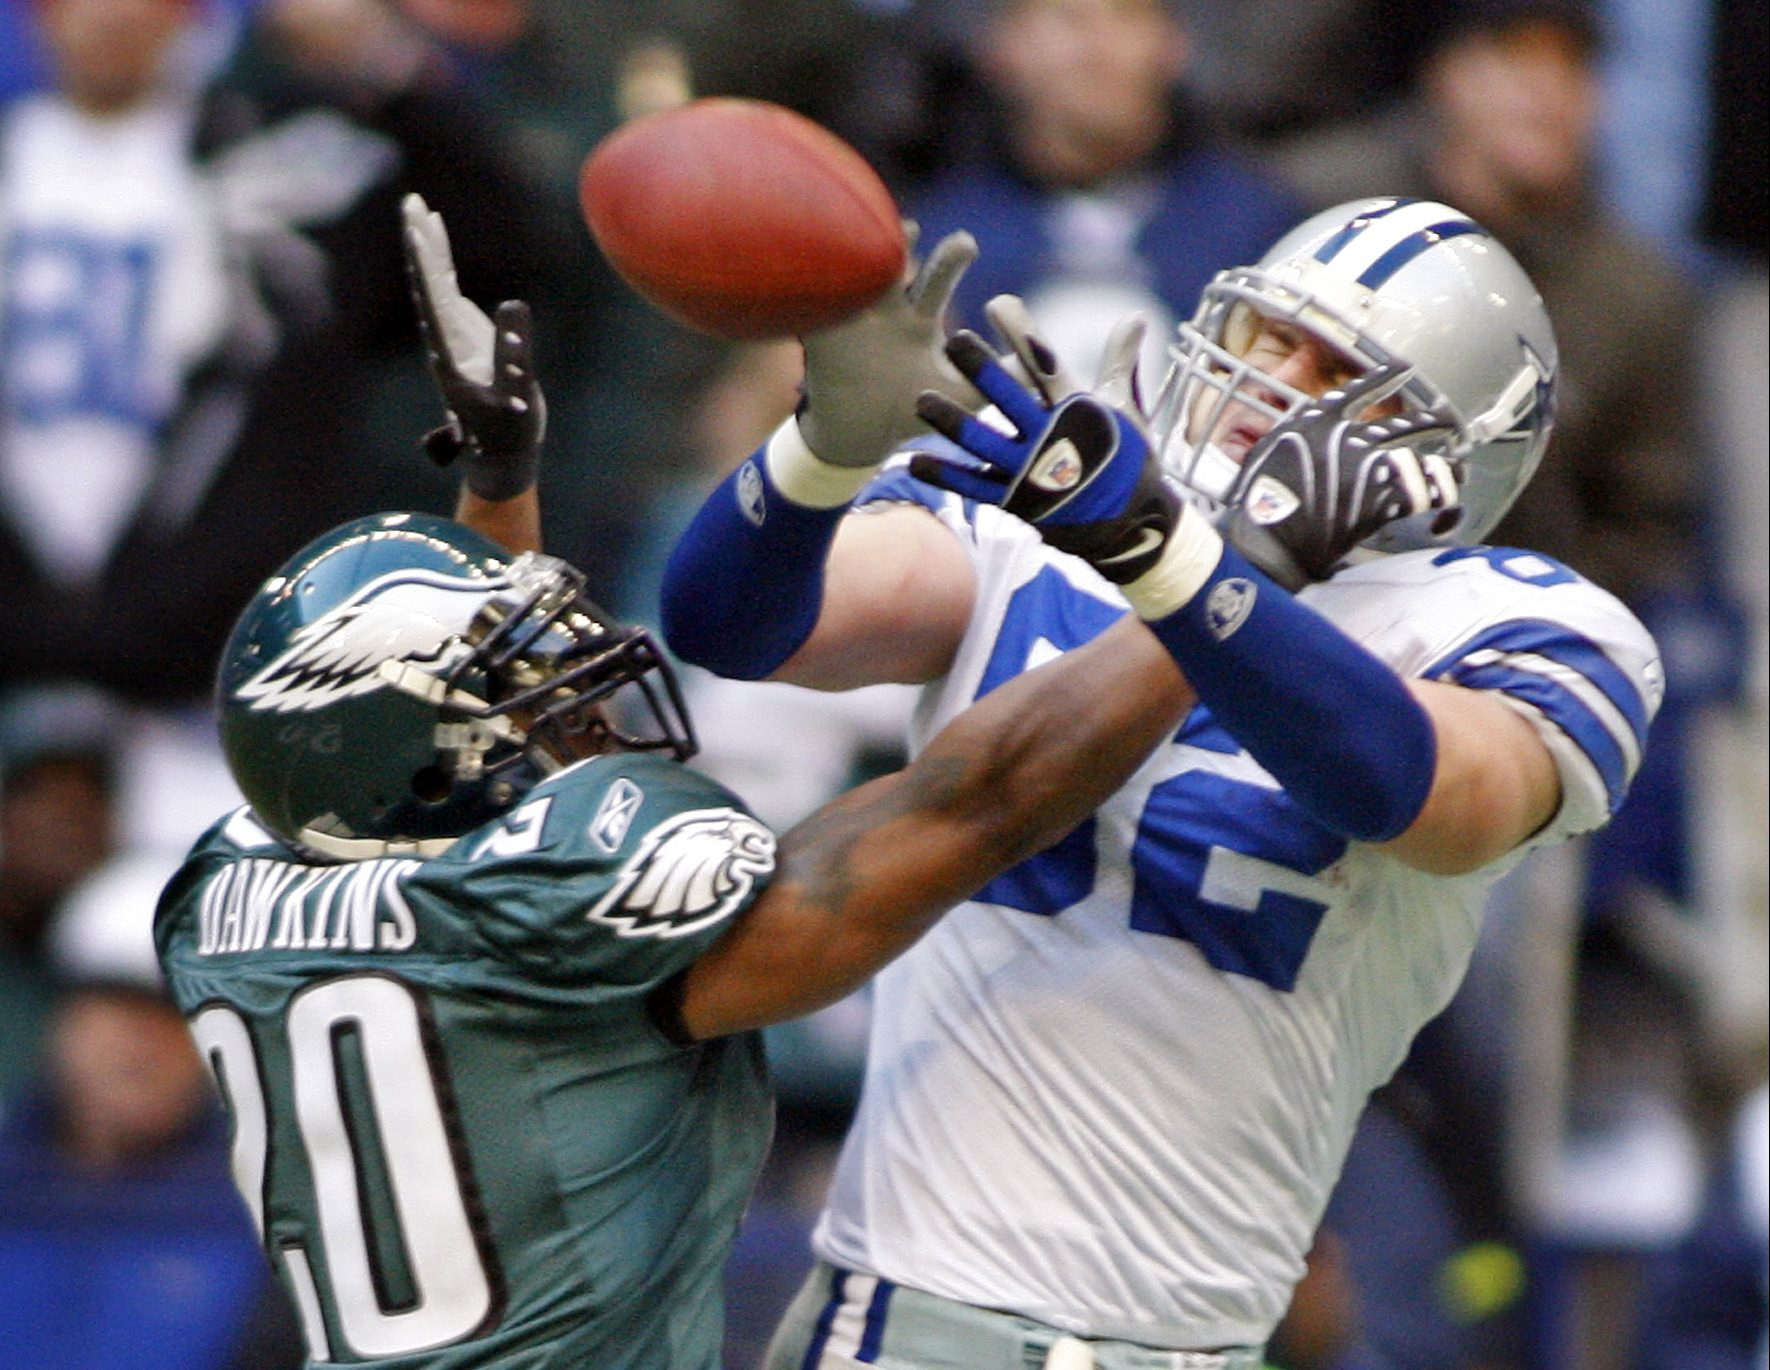 Brian Dawkins breaks up a pass in front of the Cowboys´ Jason Witten in a December 2007 game. The entire 2007 season was filled with xxxxxxxxx